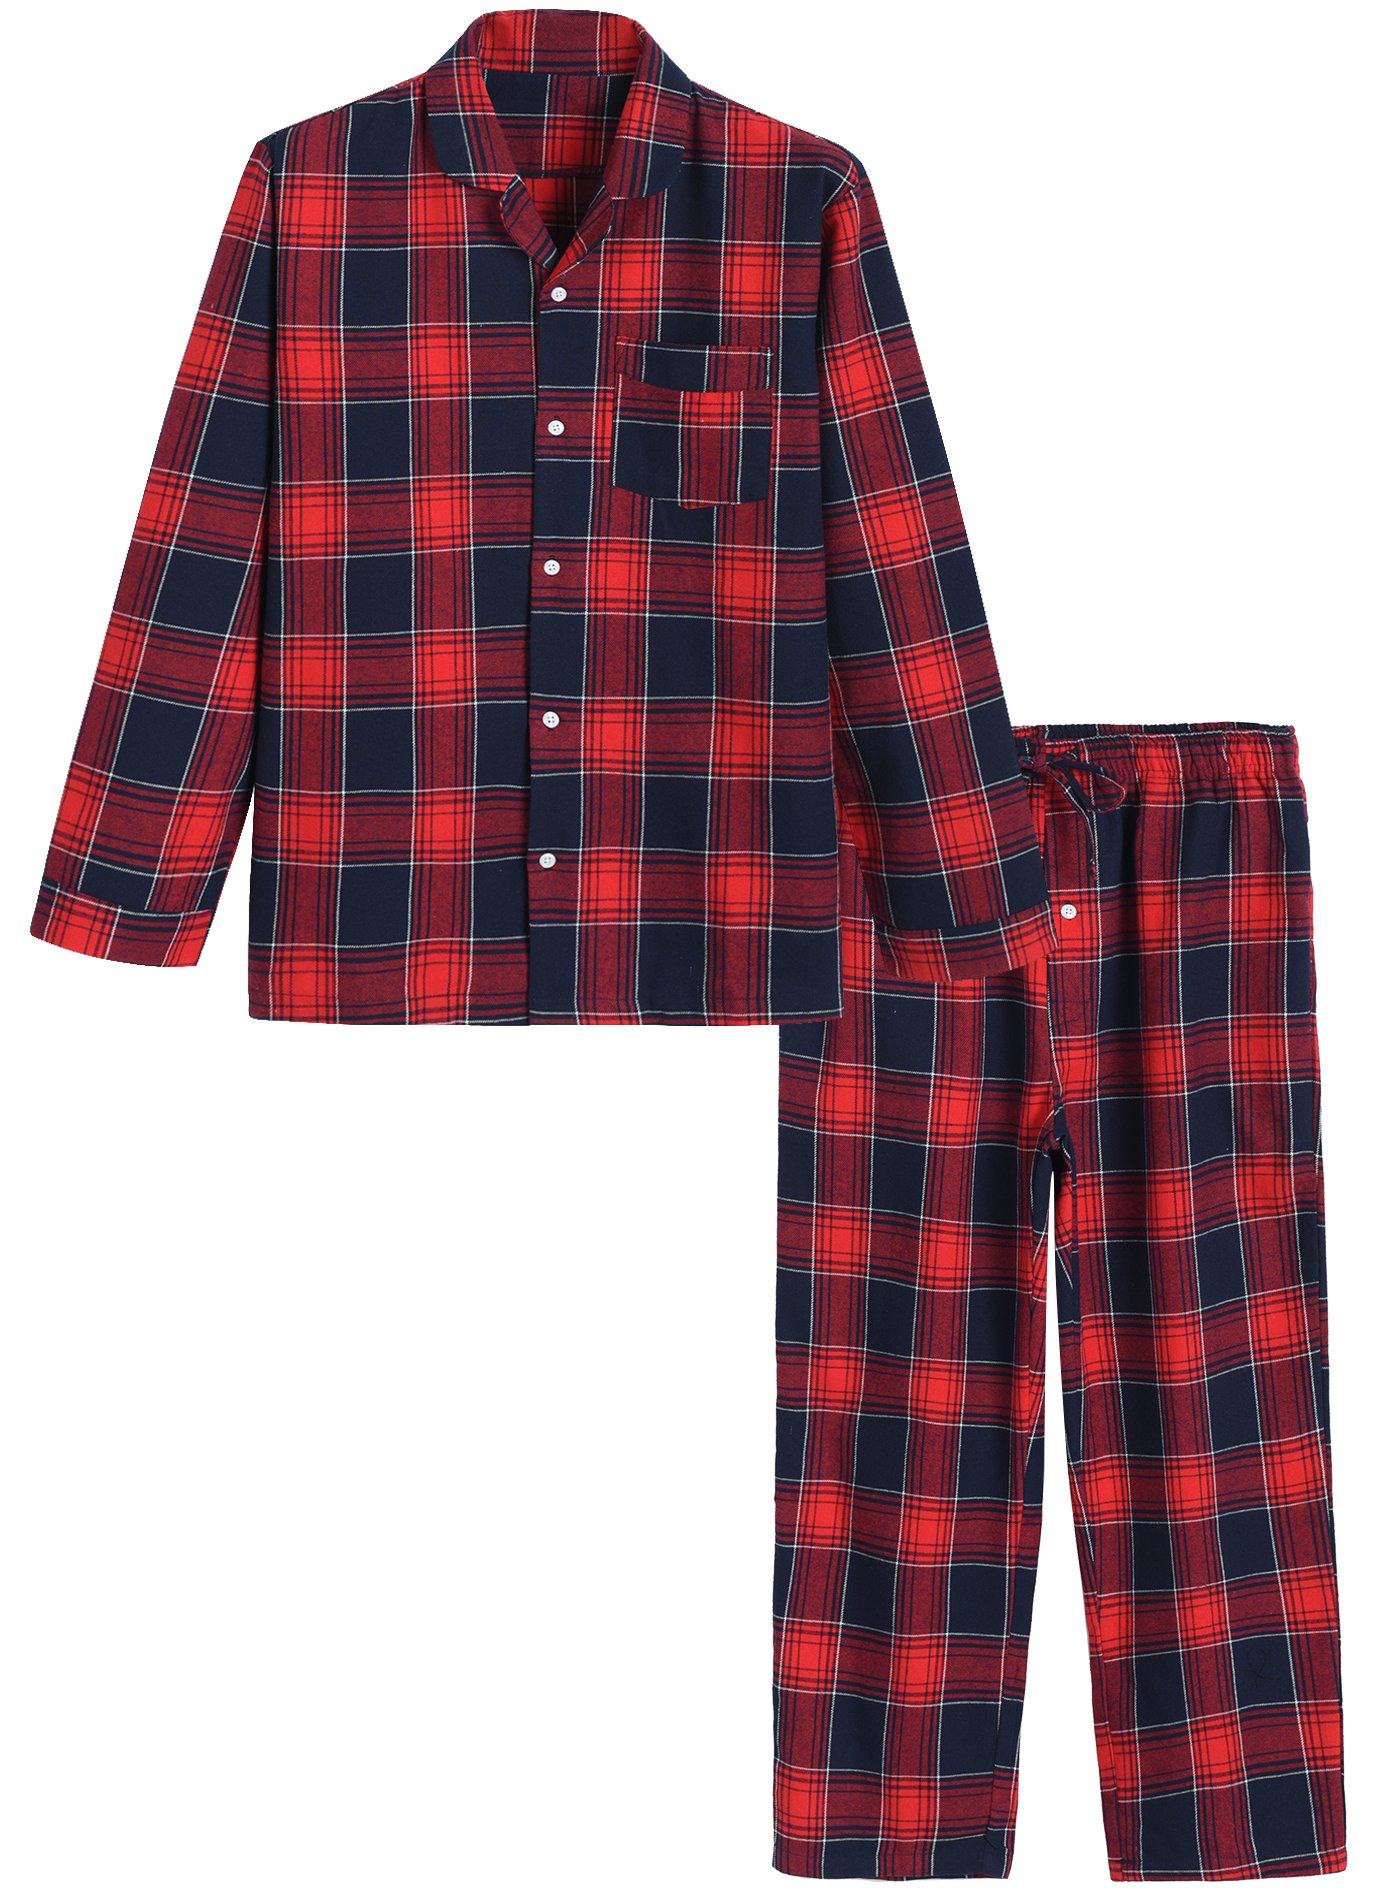 Latuza Men's Cotton Pajama Set Plaid Woven Sleepwear M Red